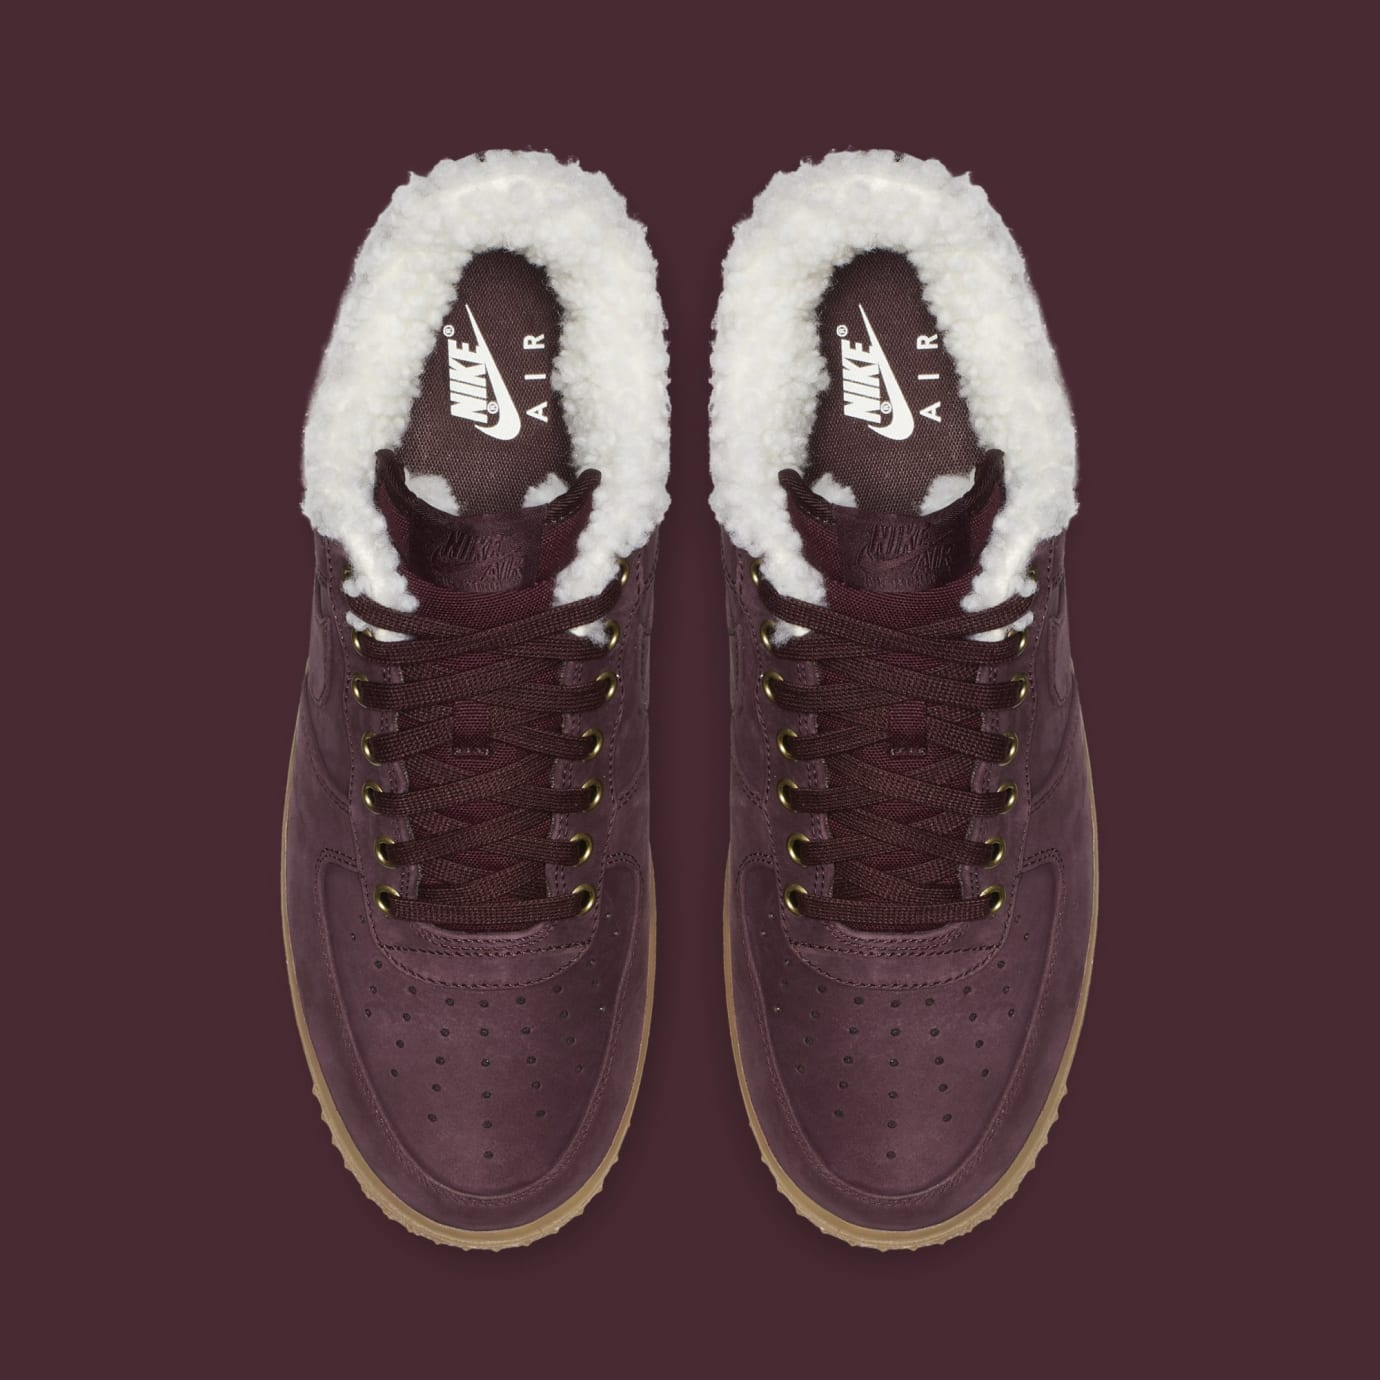 28c82c871d8c Image via Nike Nike Air Force 1 Premium Winter  Burgundy Crush Gum Light  Brown  Av2874-